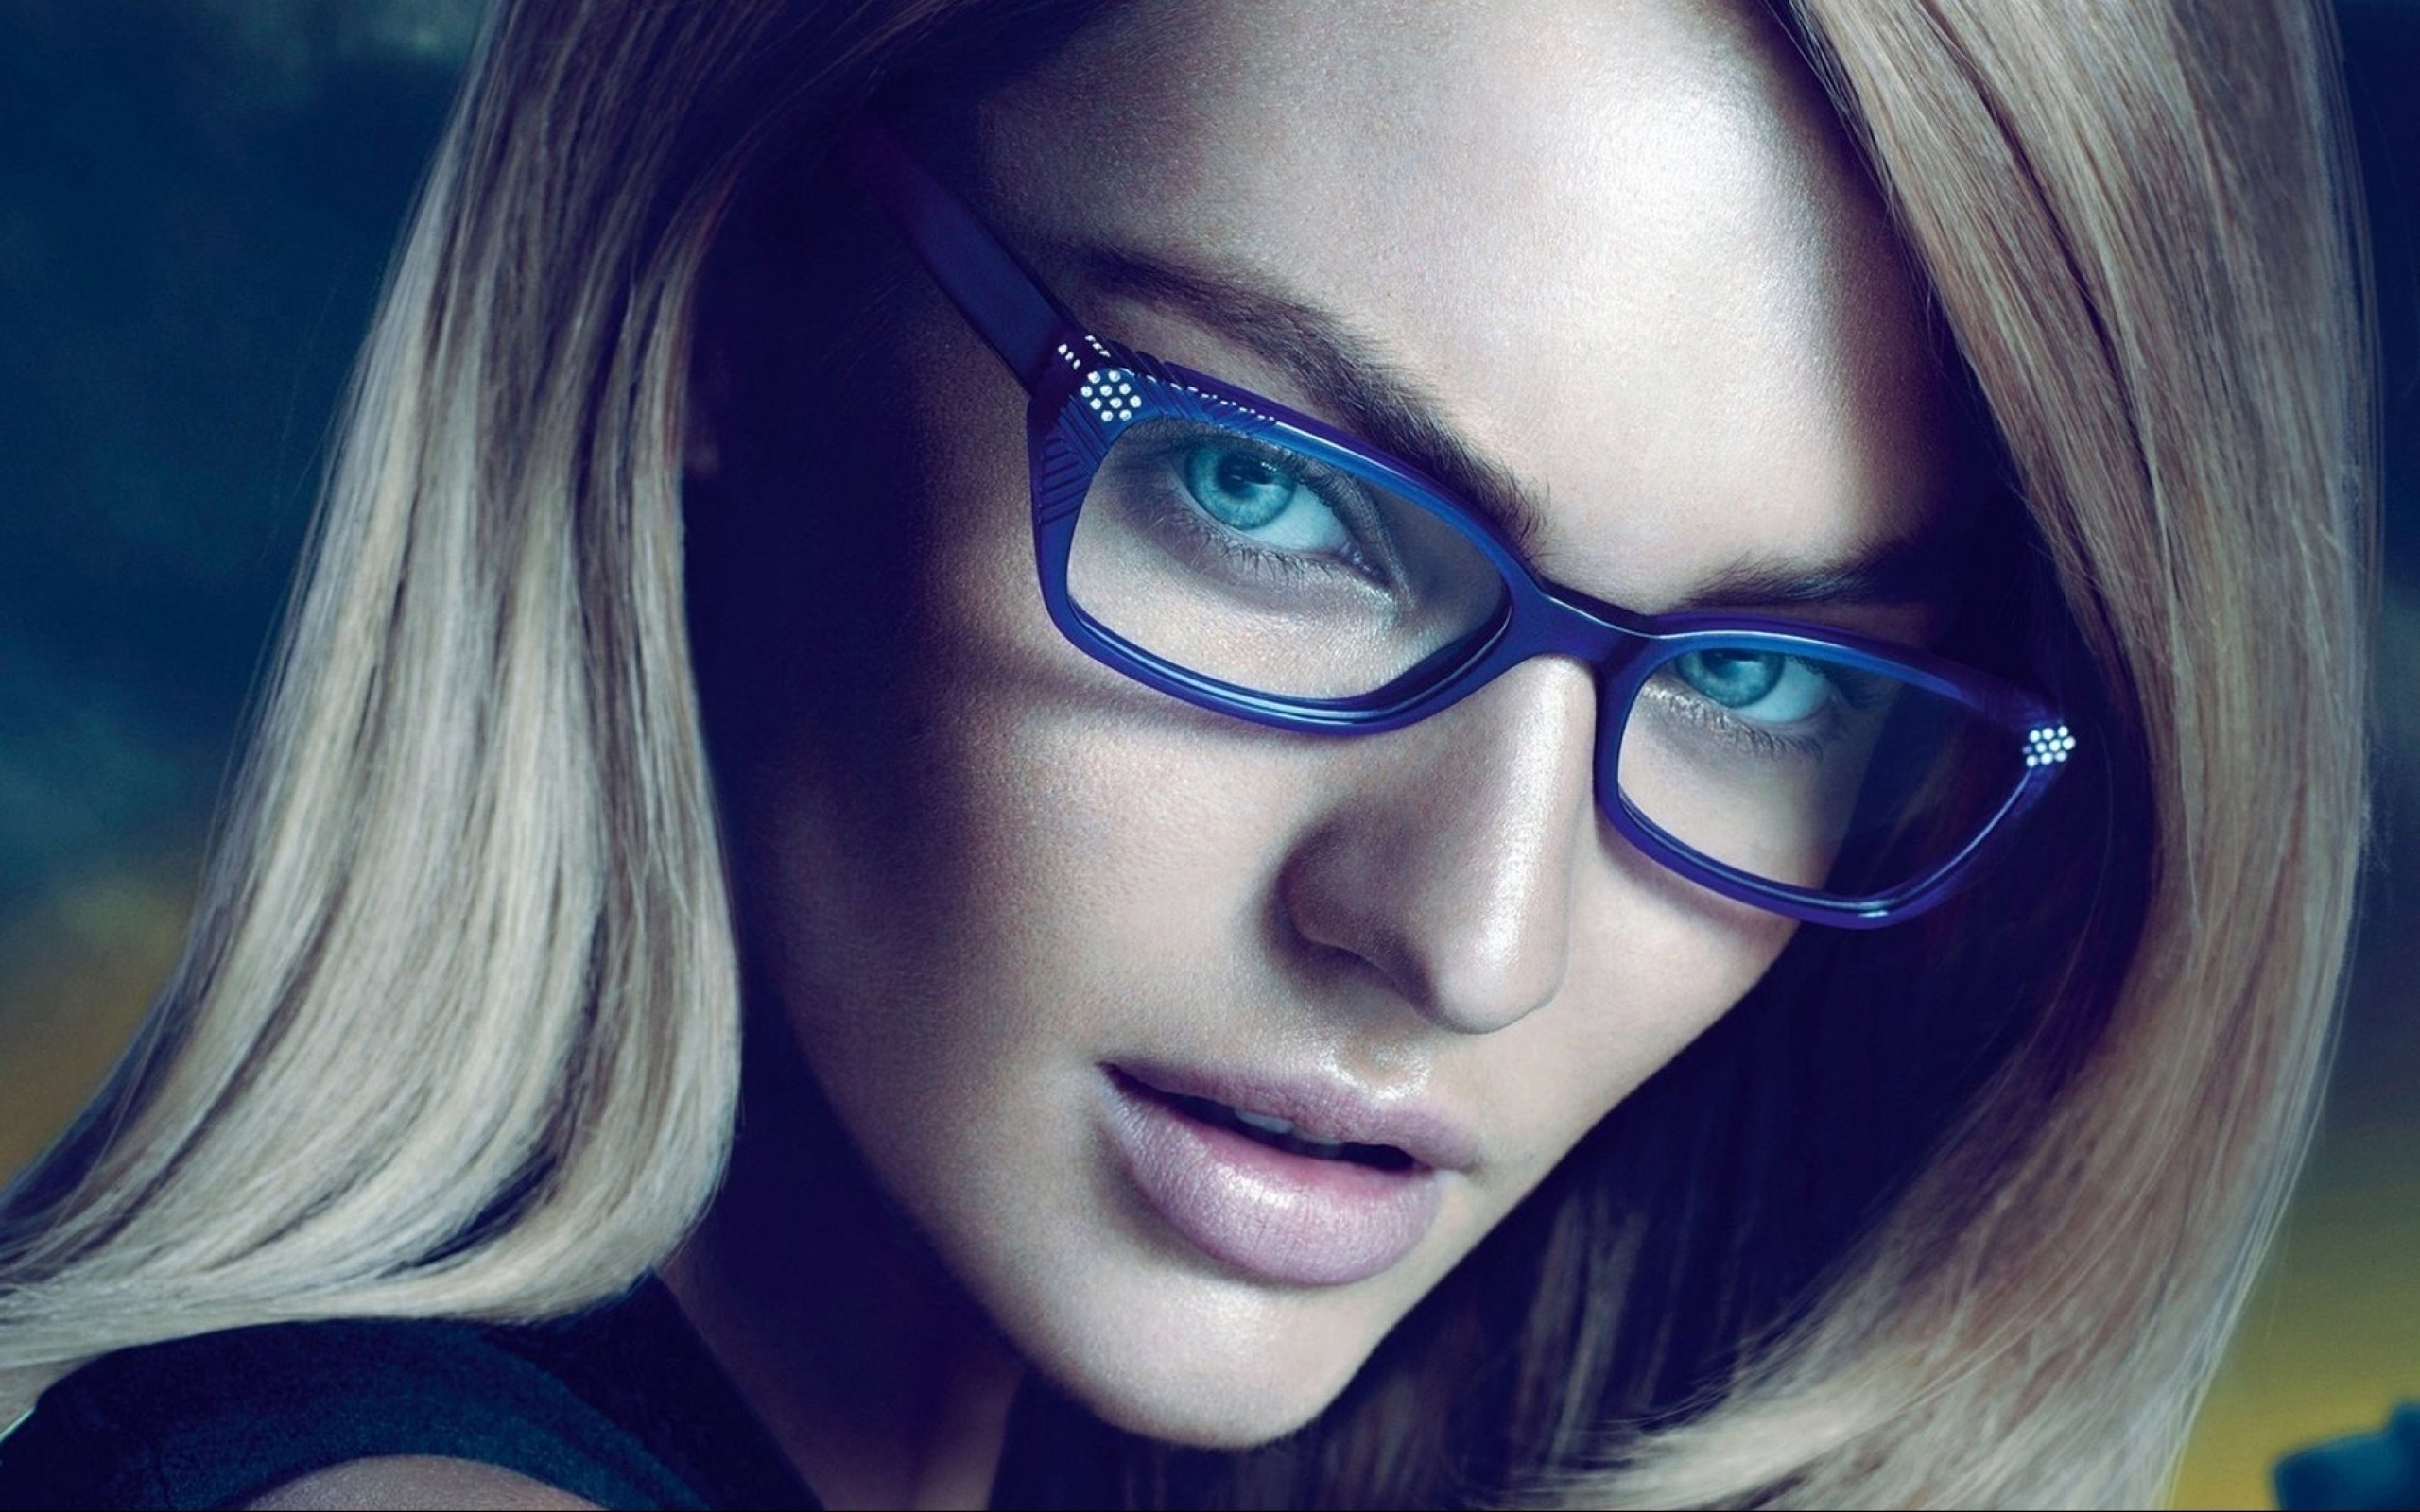 girls with glasses wallpaper 33598